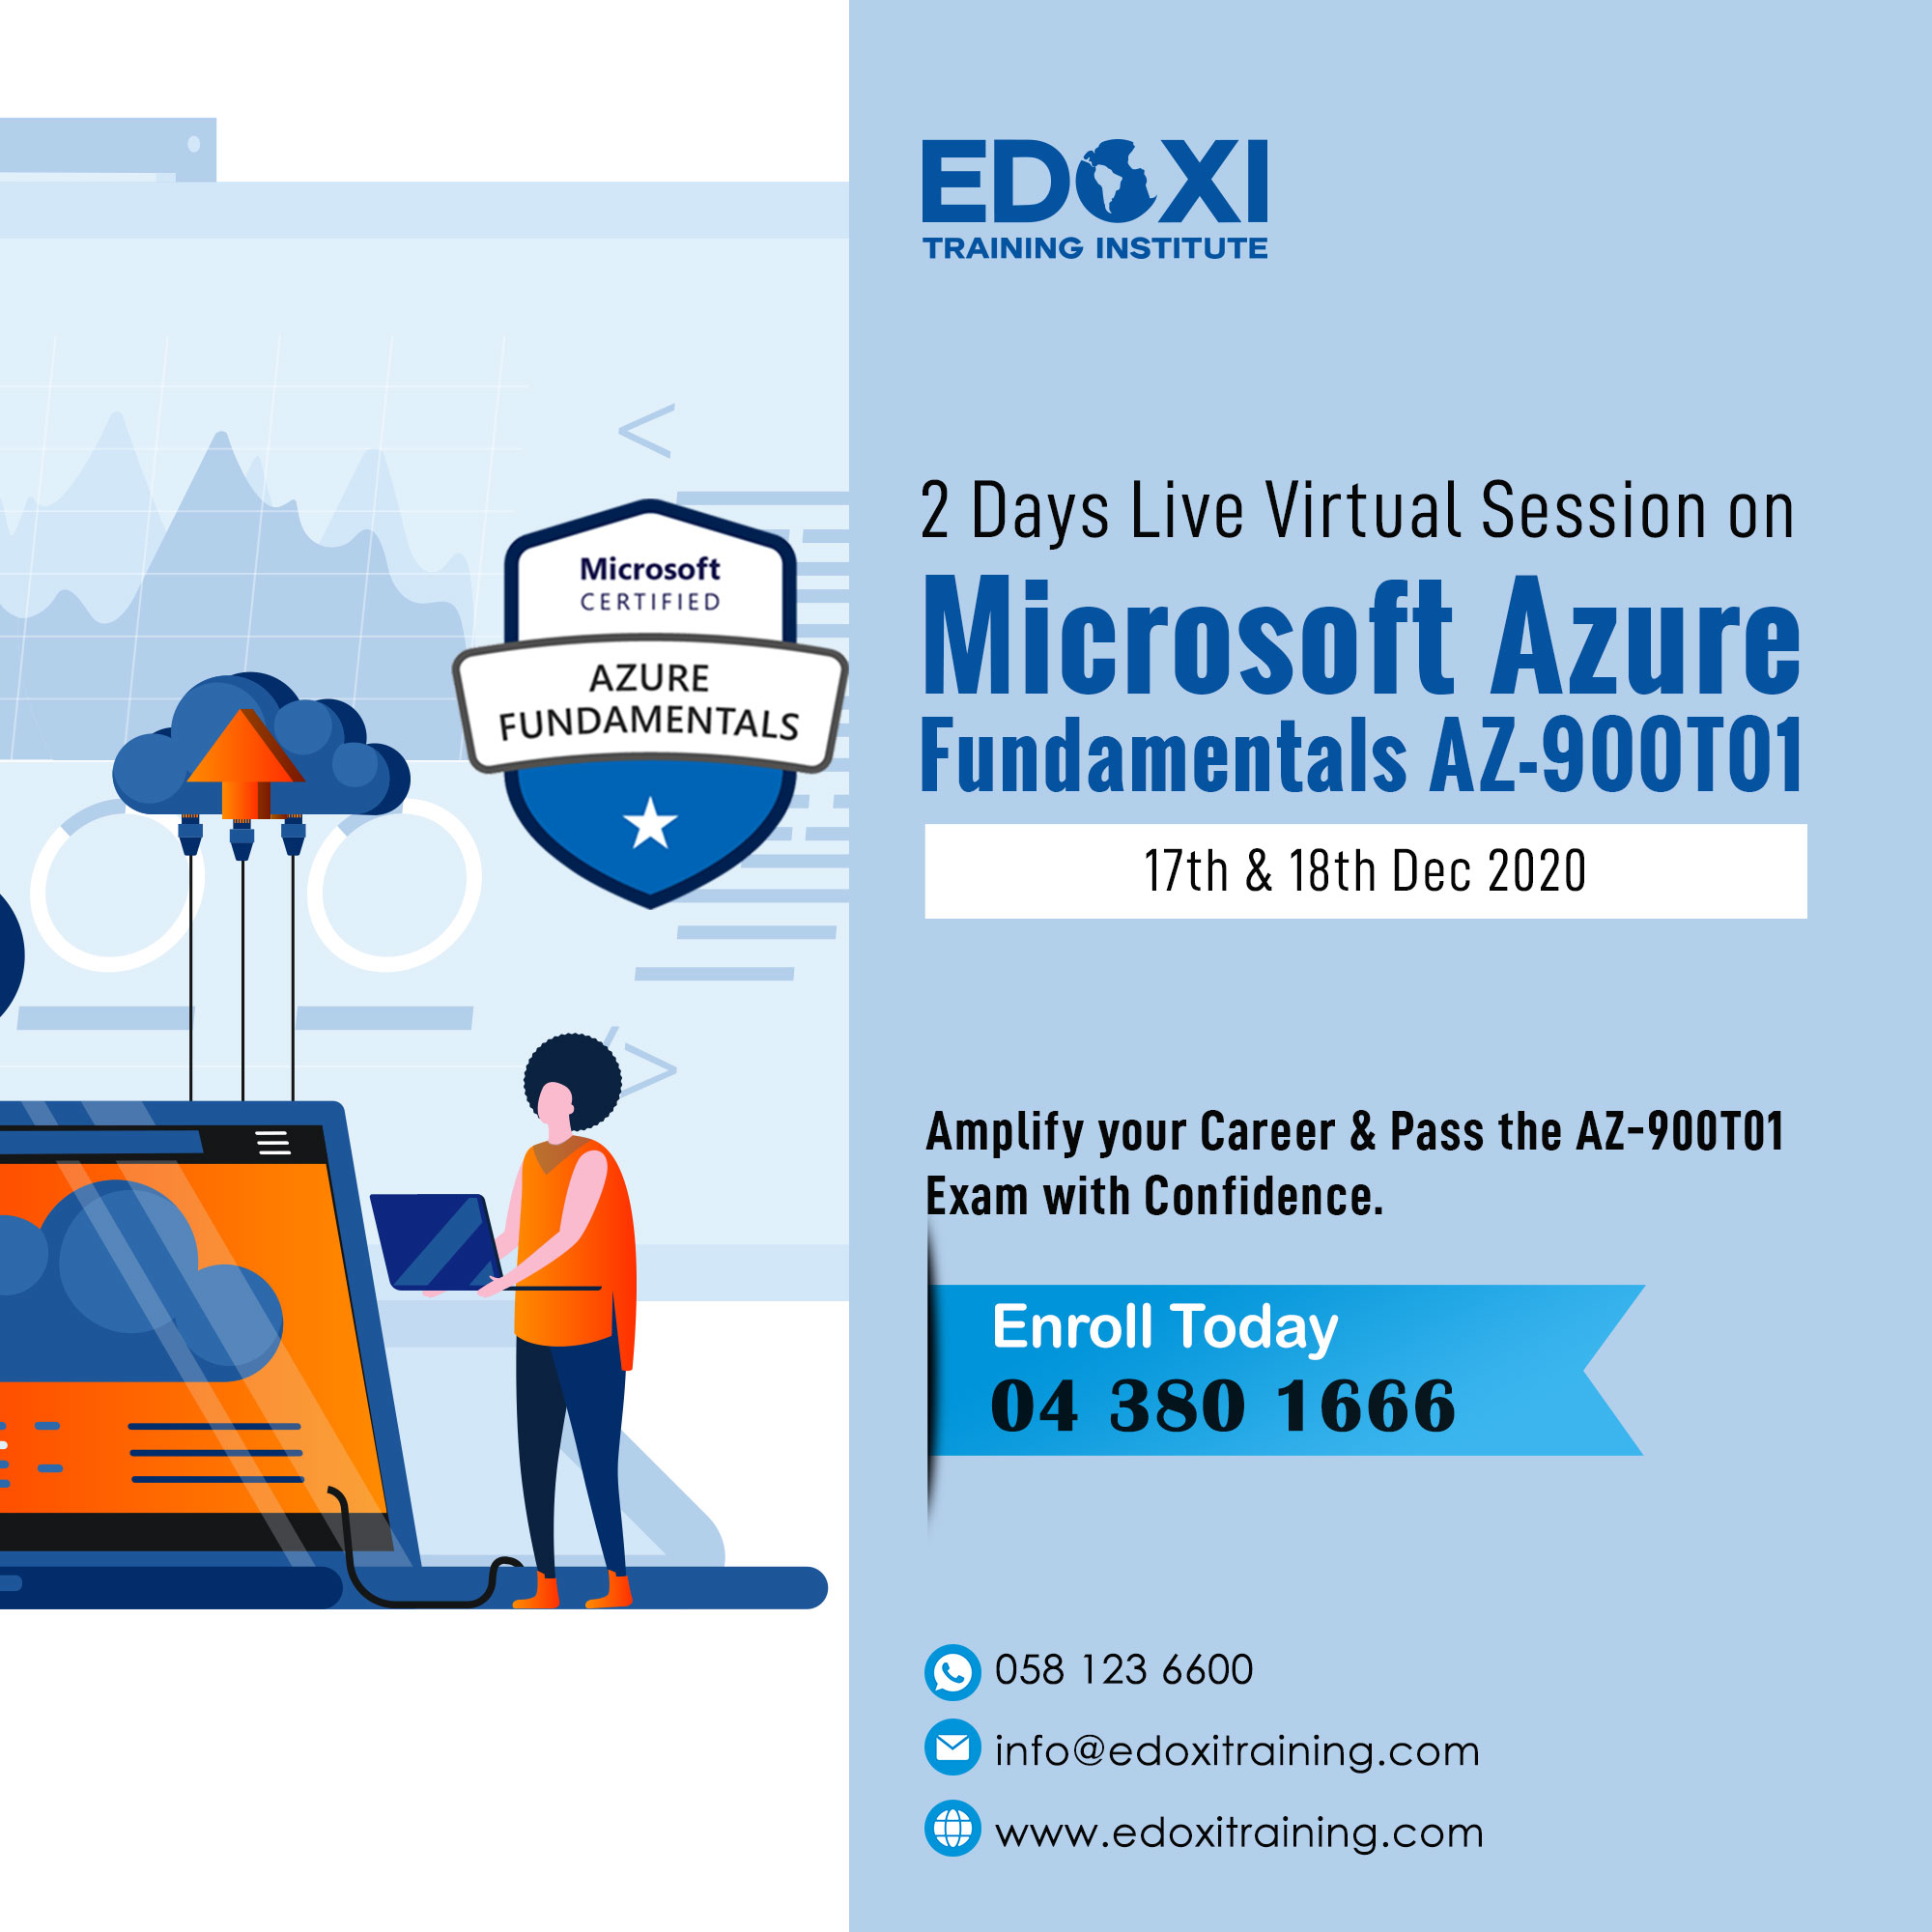 2 Days Live Virtual Session on Microsoft Azure Fundamentals AZ-900T01